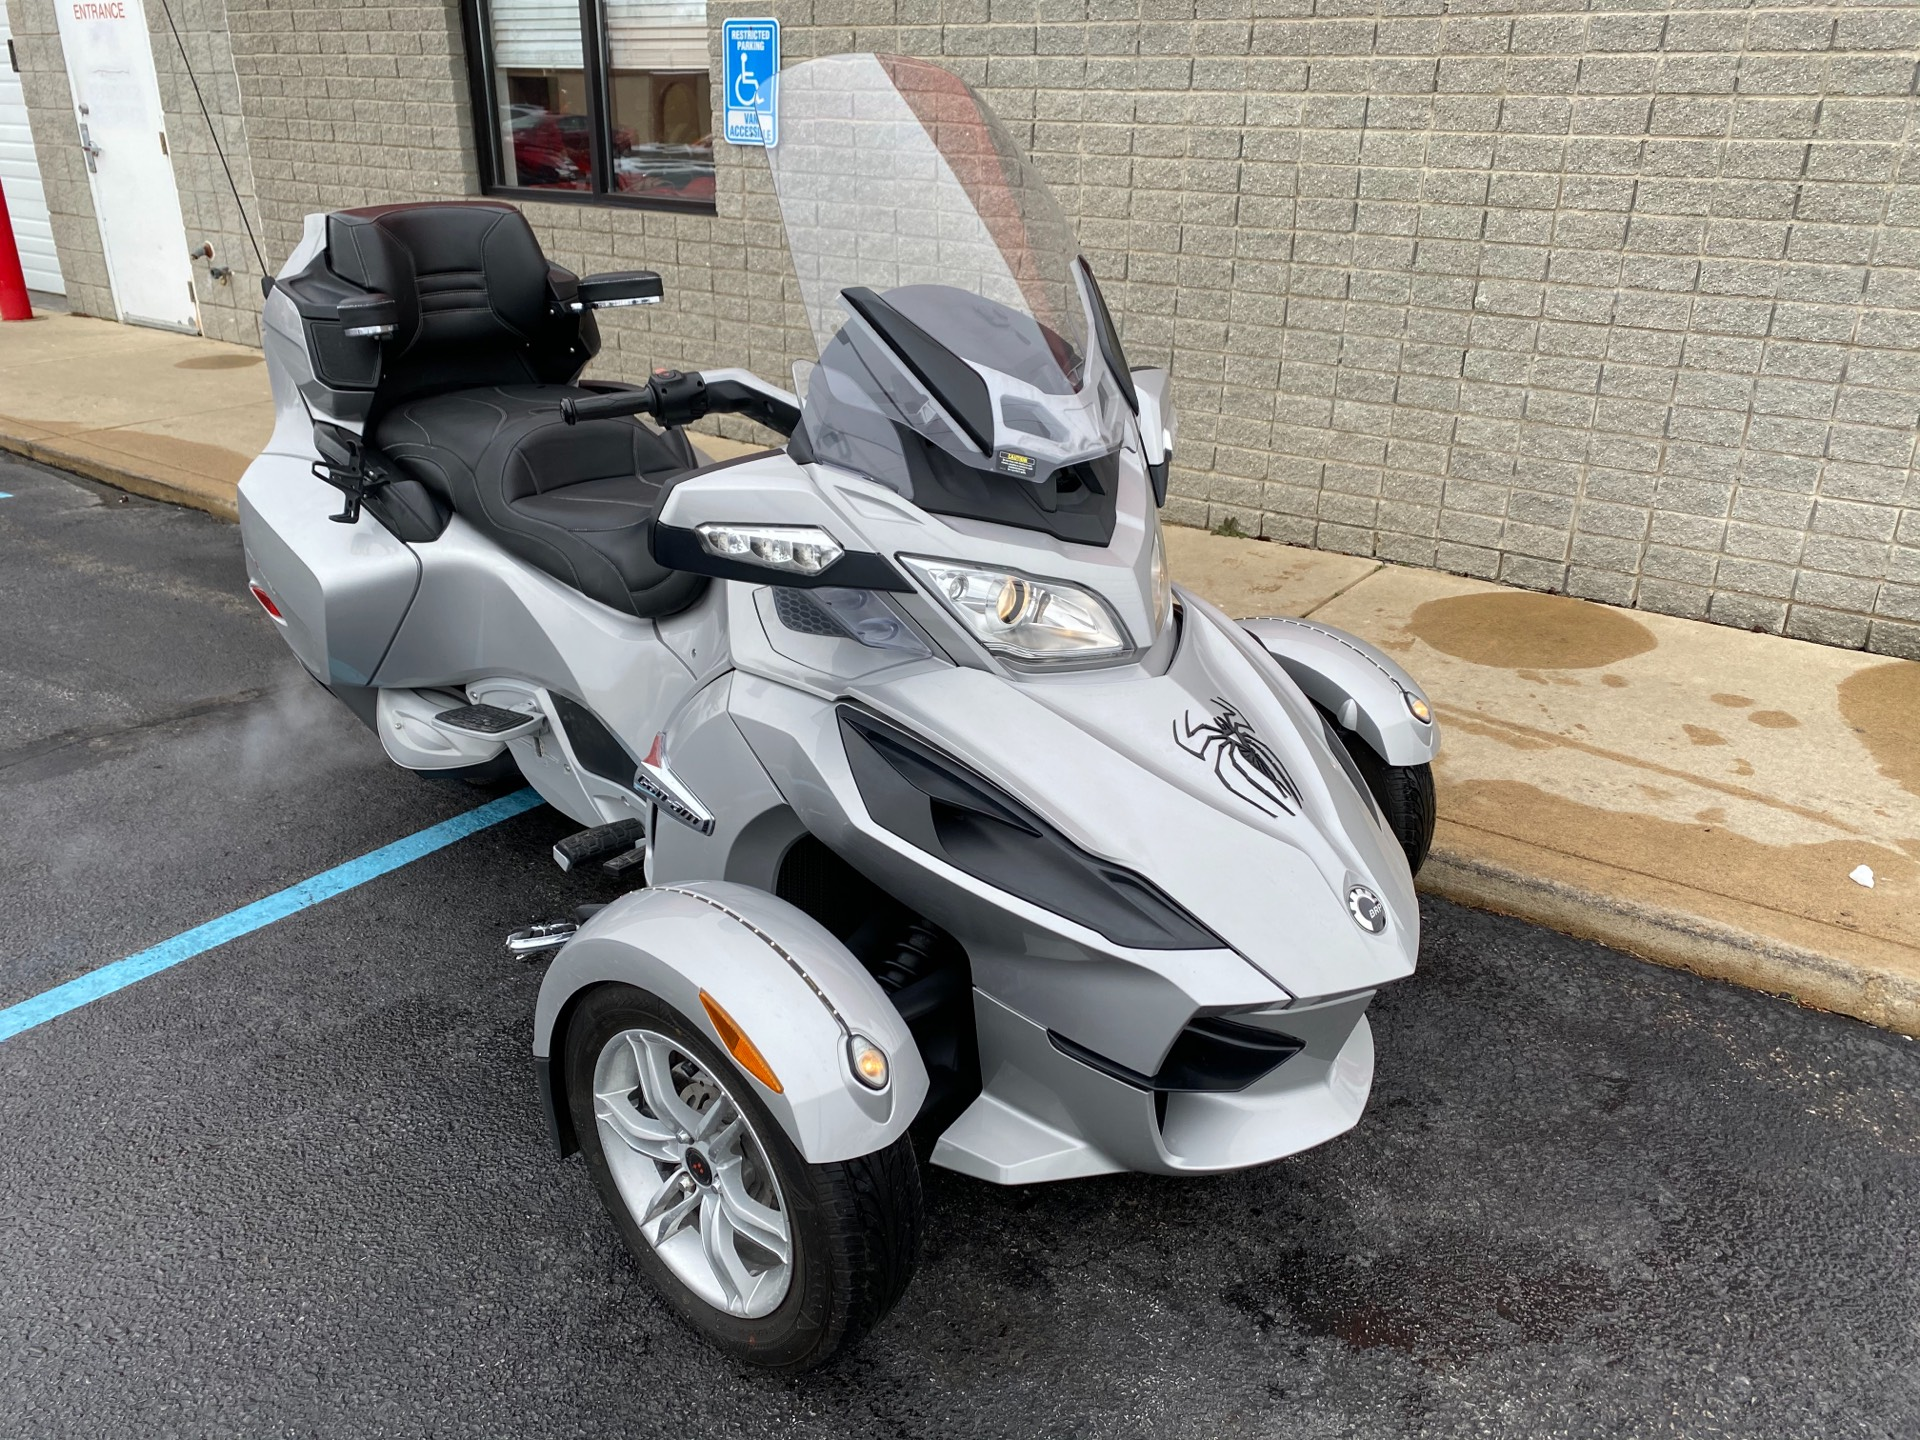 2010 Can-Am Spyder® RT Audio & Convenience SM5 in Monroe, Michigan - Photo 4